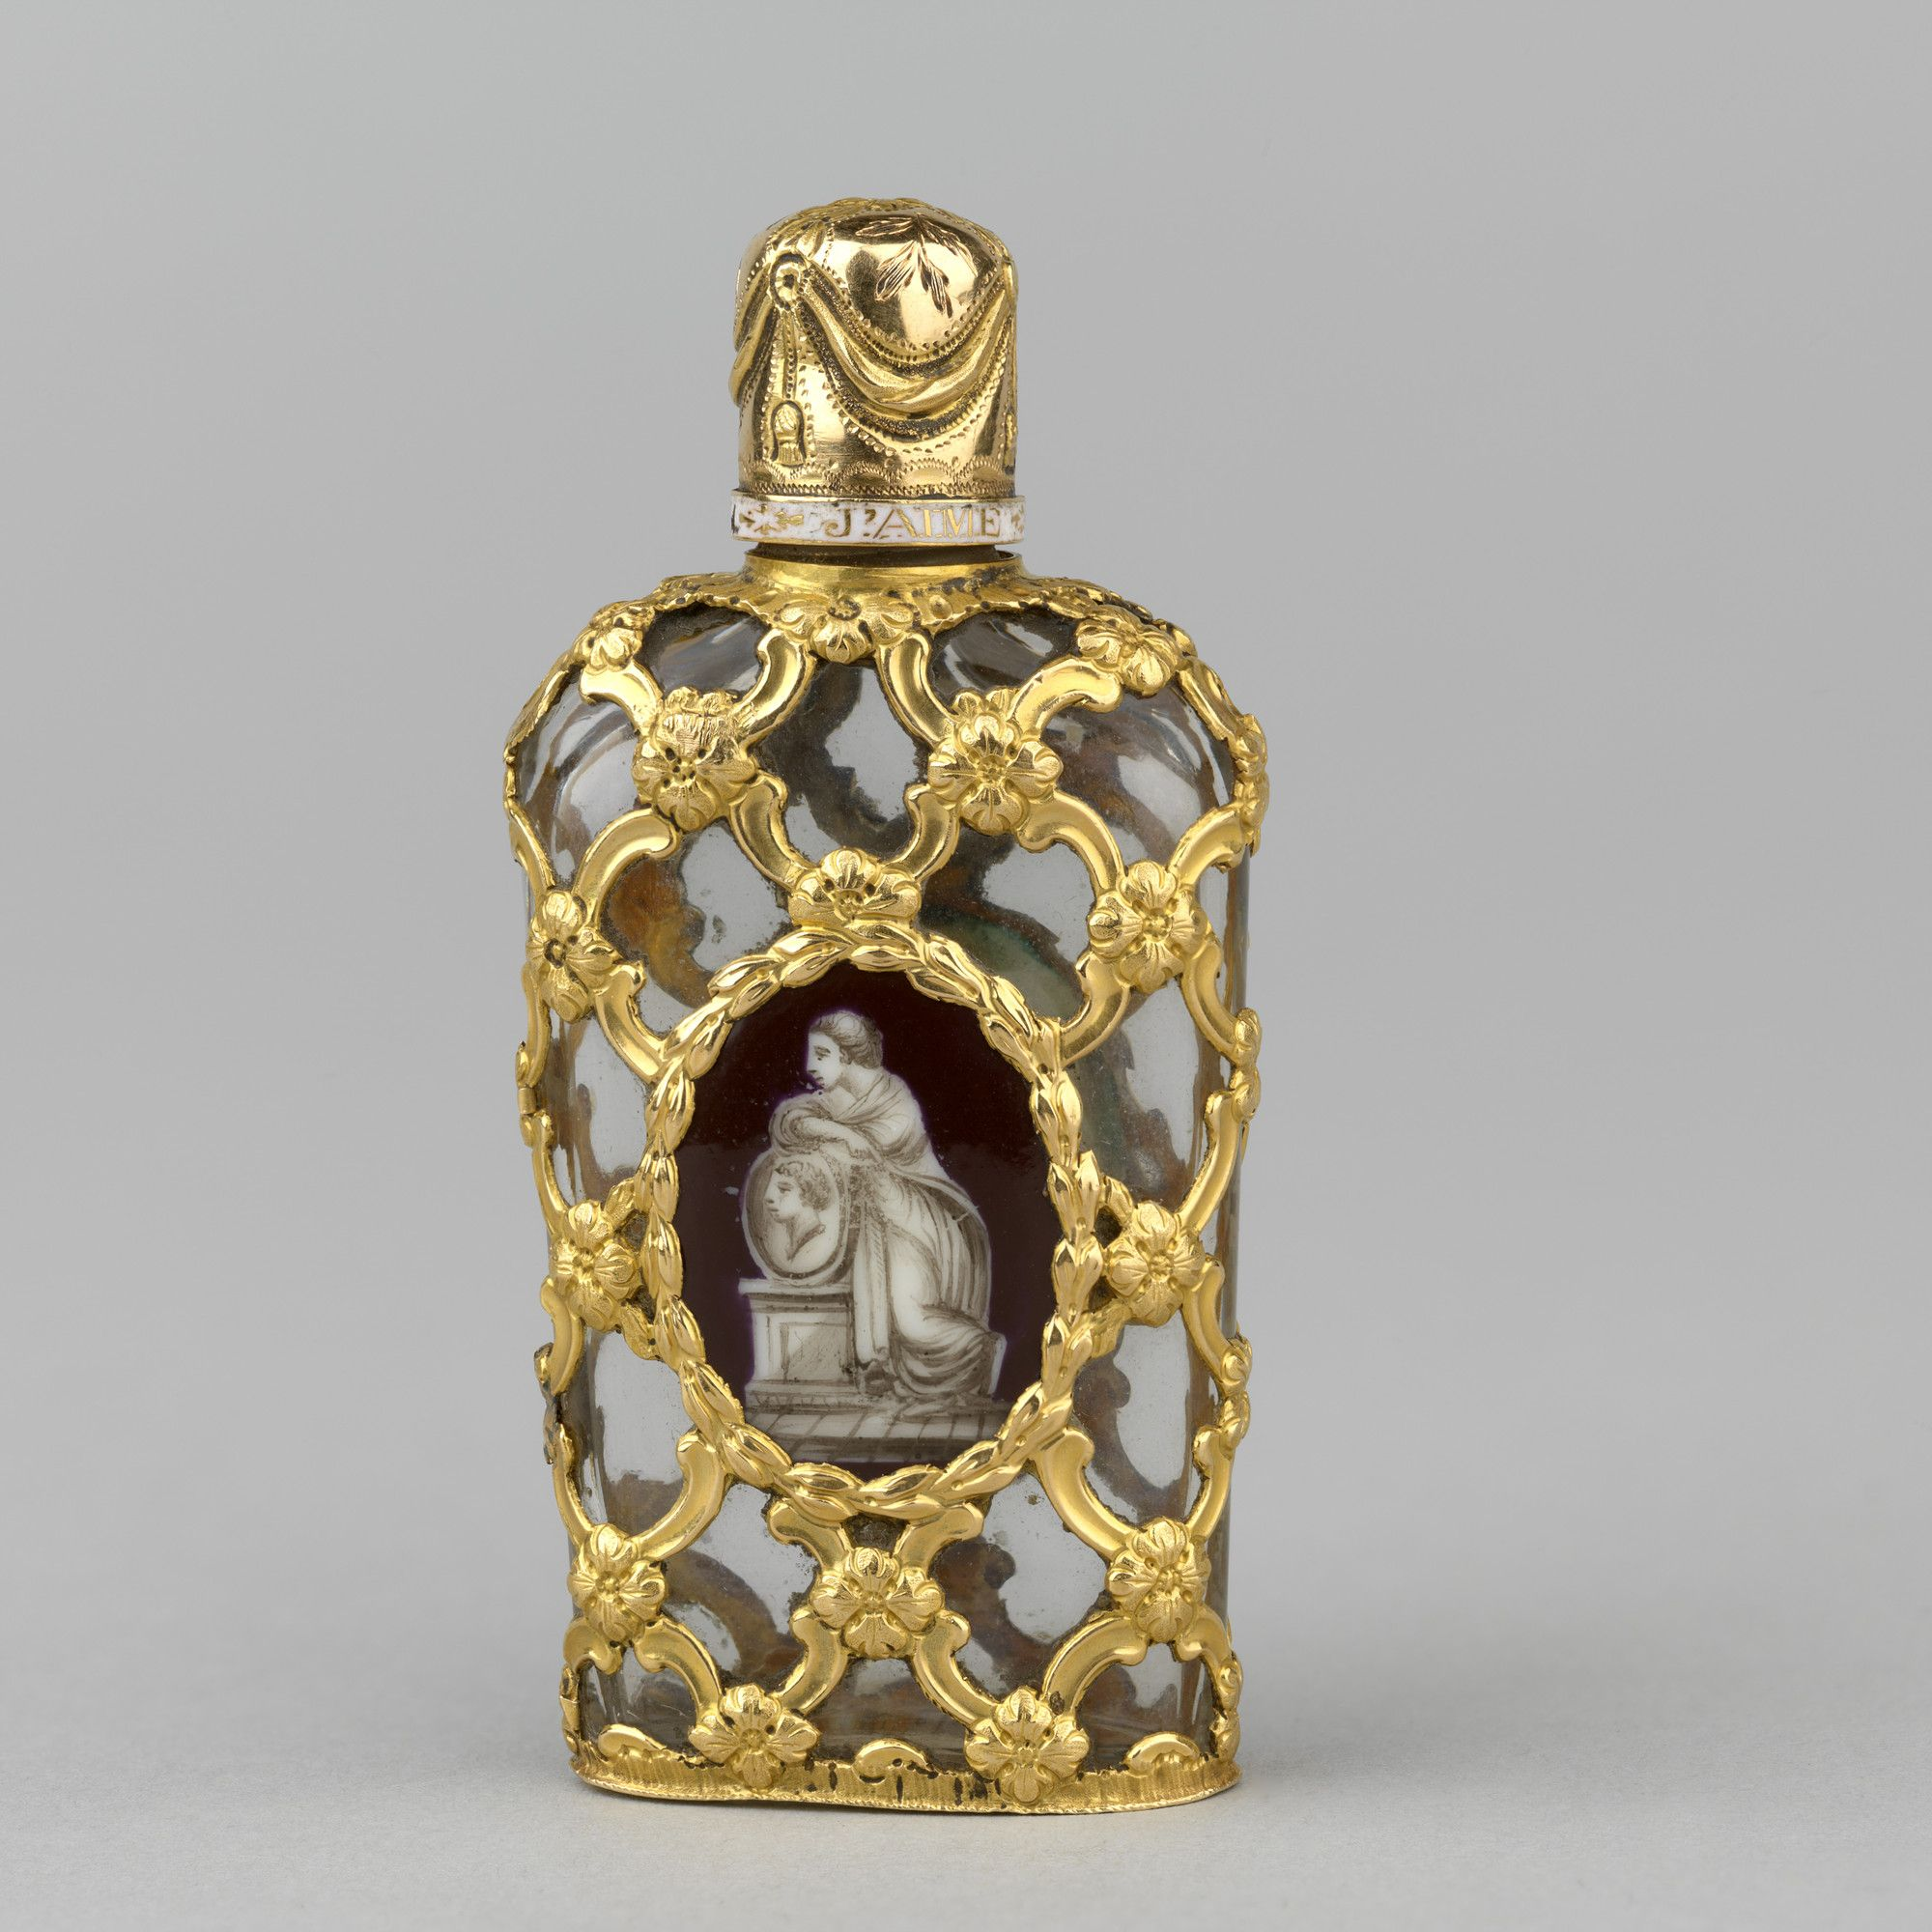 Tall oval in section gold scent bottle